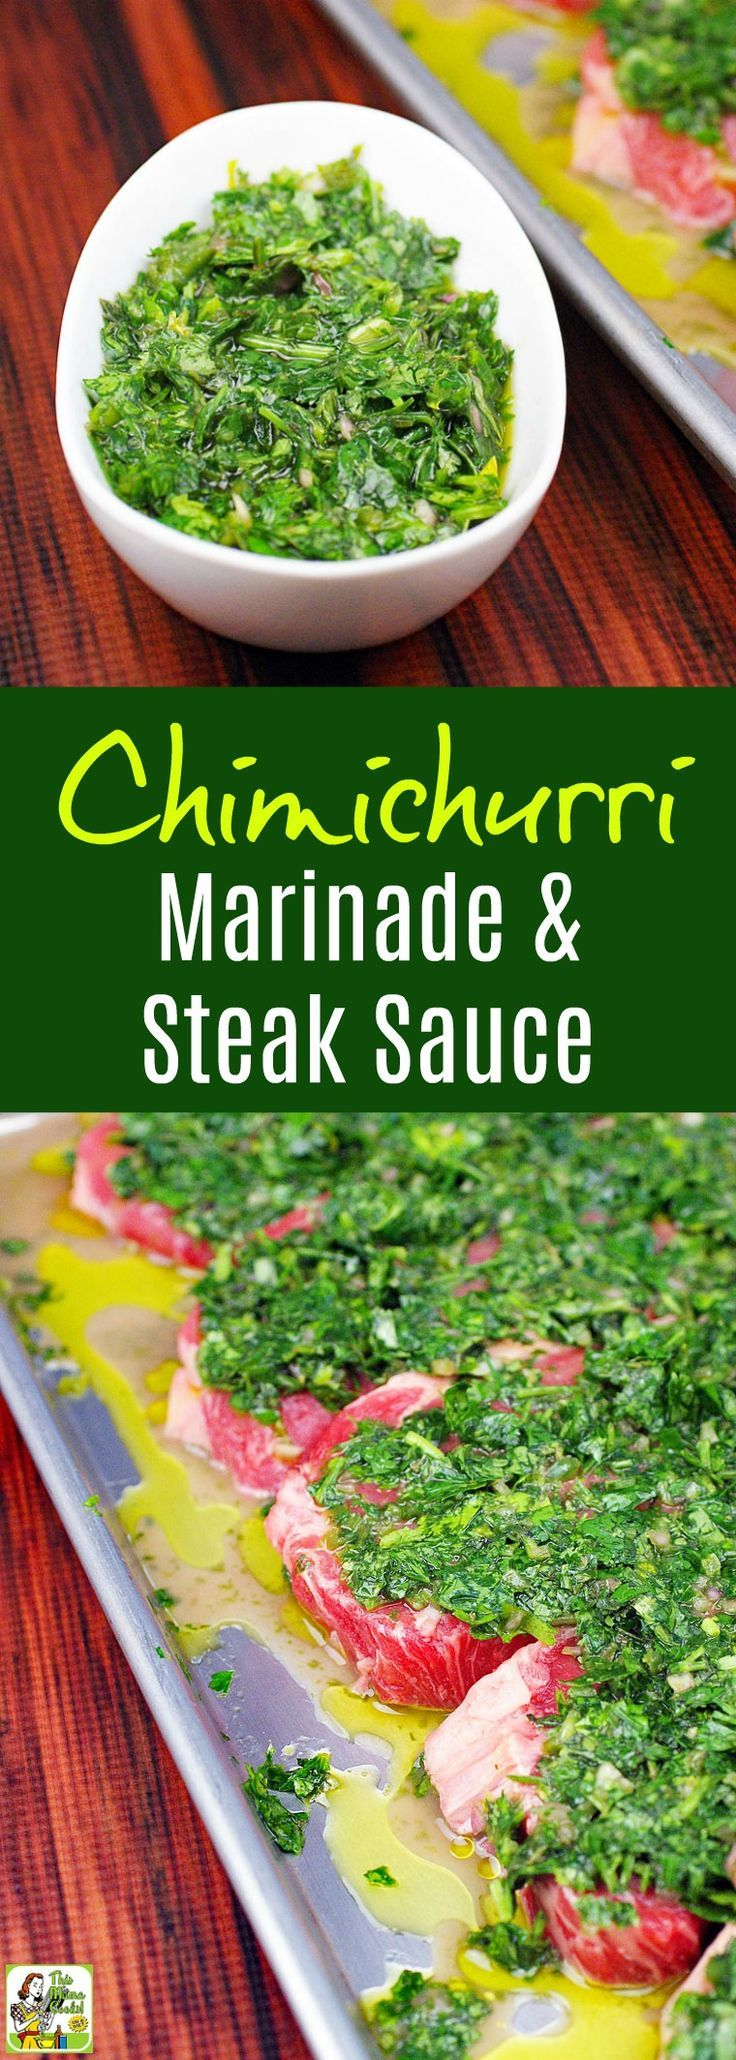 Making the Best Chimichurri Recipe is easier than you think. Click to get this Chimichurri Marinade & Steak Sauce Recipe. Homemade chimichurri sauce is perfect for marinating and serving with grilled skirt steak or flank steak. #marinade #marinate #sauce #steak #chimichurri #homemade #homemadesauce #flanksteak #skirtsteak #grilling #recipe #easyrecipe #steaks